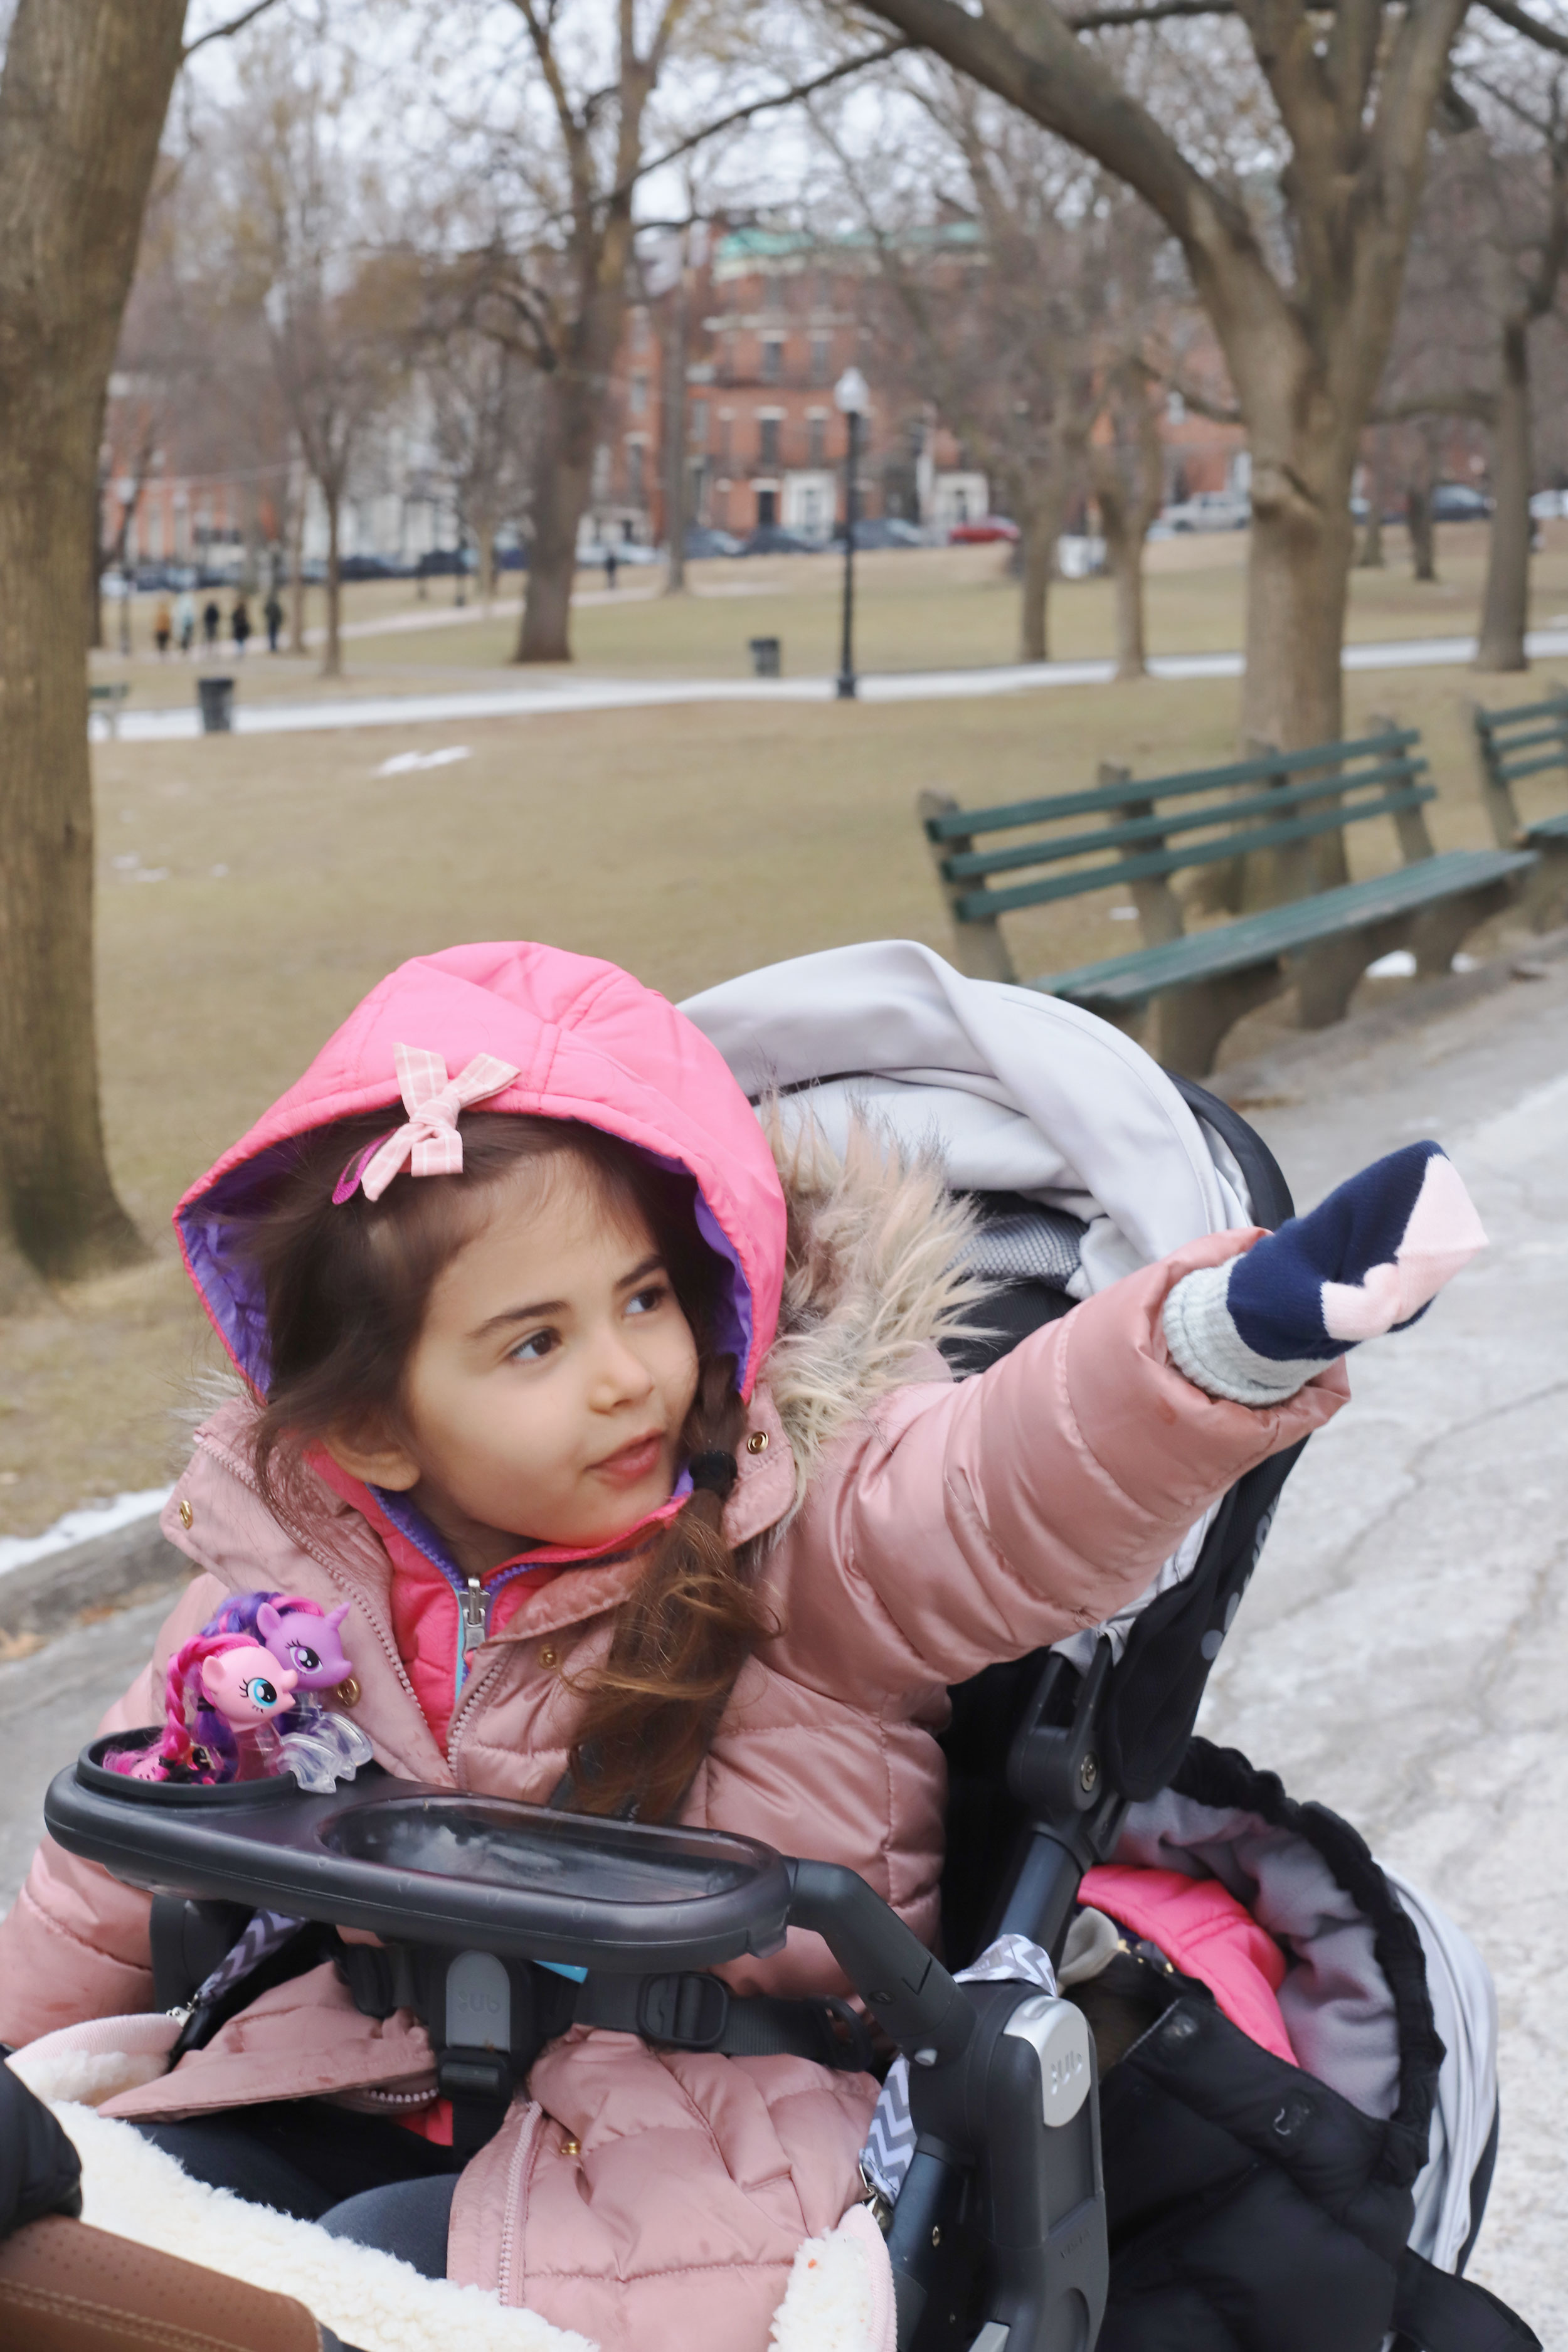 We walked through Boston Common several times throughout our long weekend trip